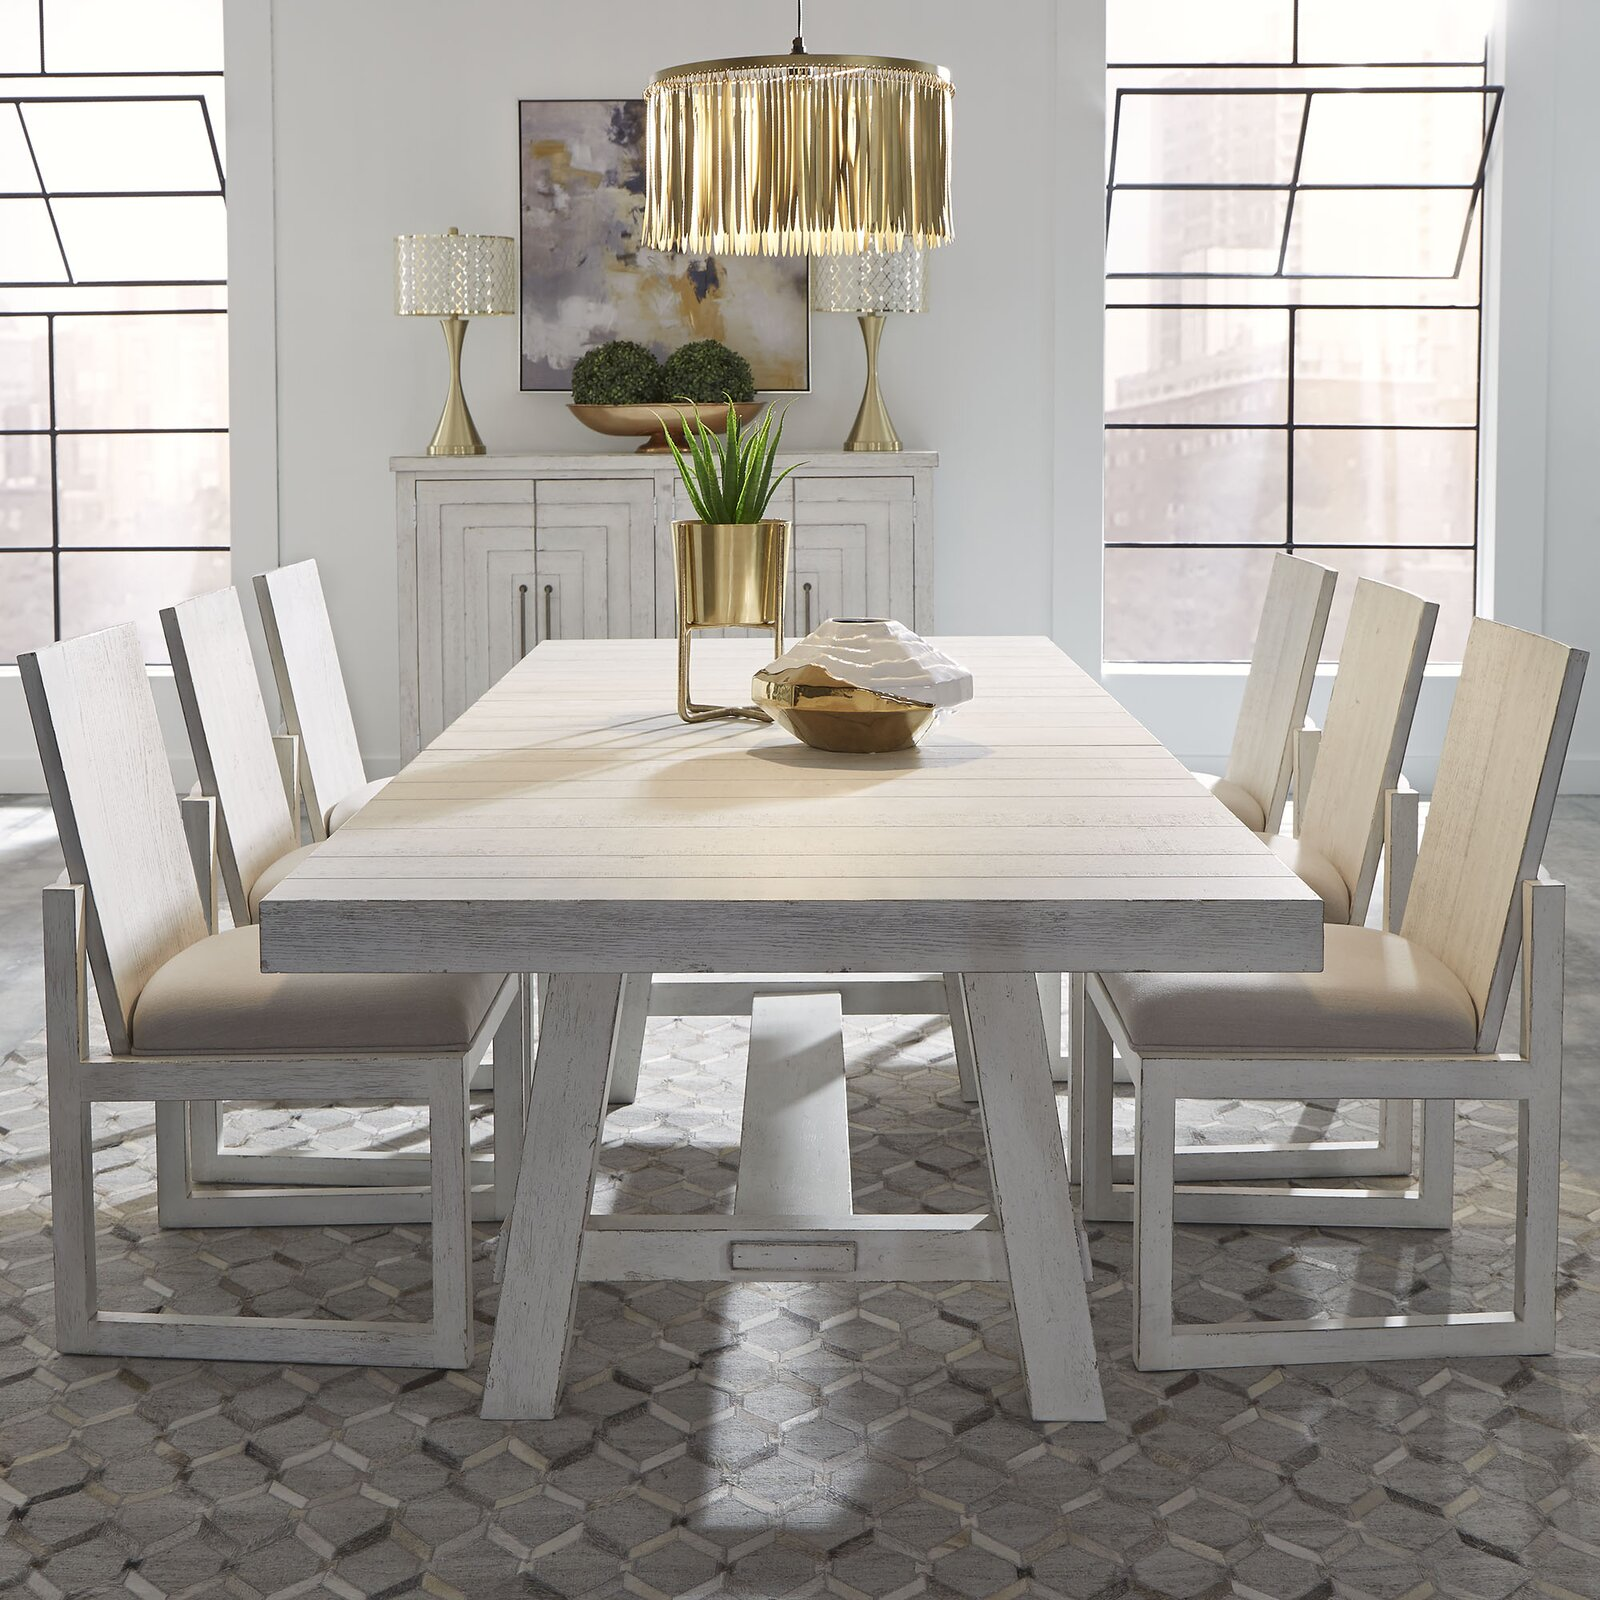 white-farmhouse-dining-table-large-size-trestle-base-seats-10-guests-extendable-design-weathered-finish-sturdy-rustic-furniture-for-sale-online